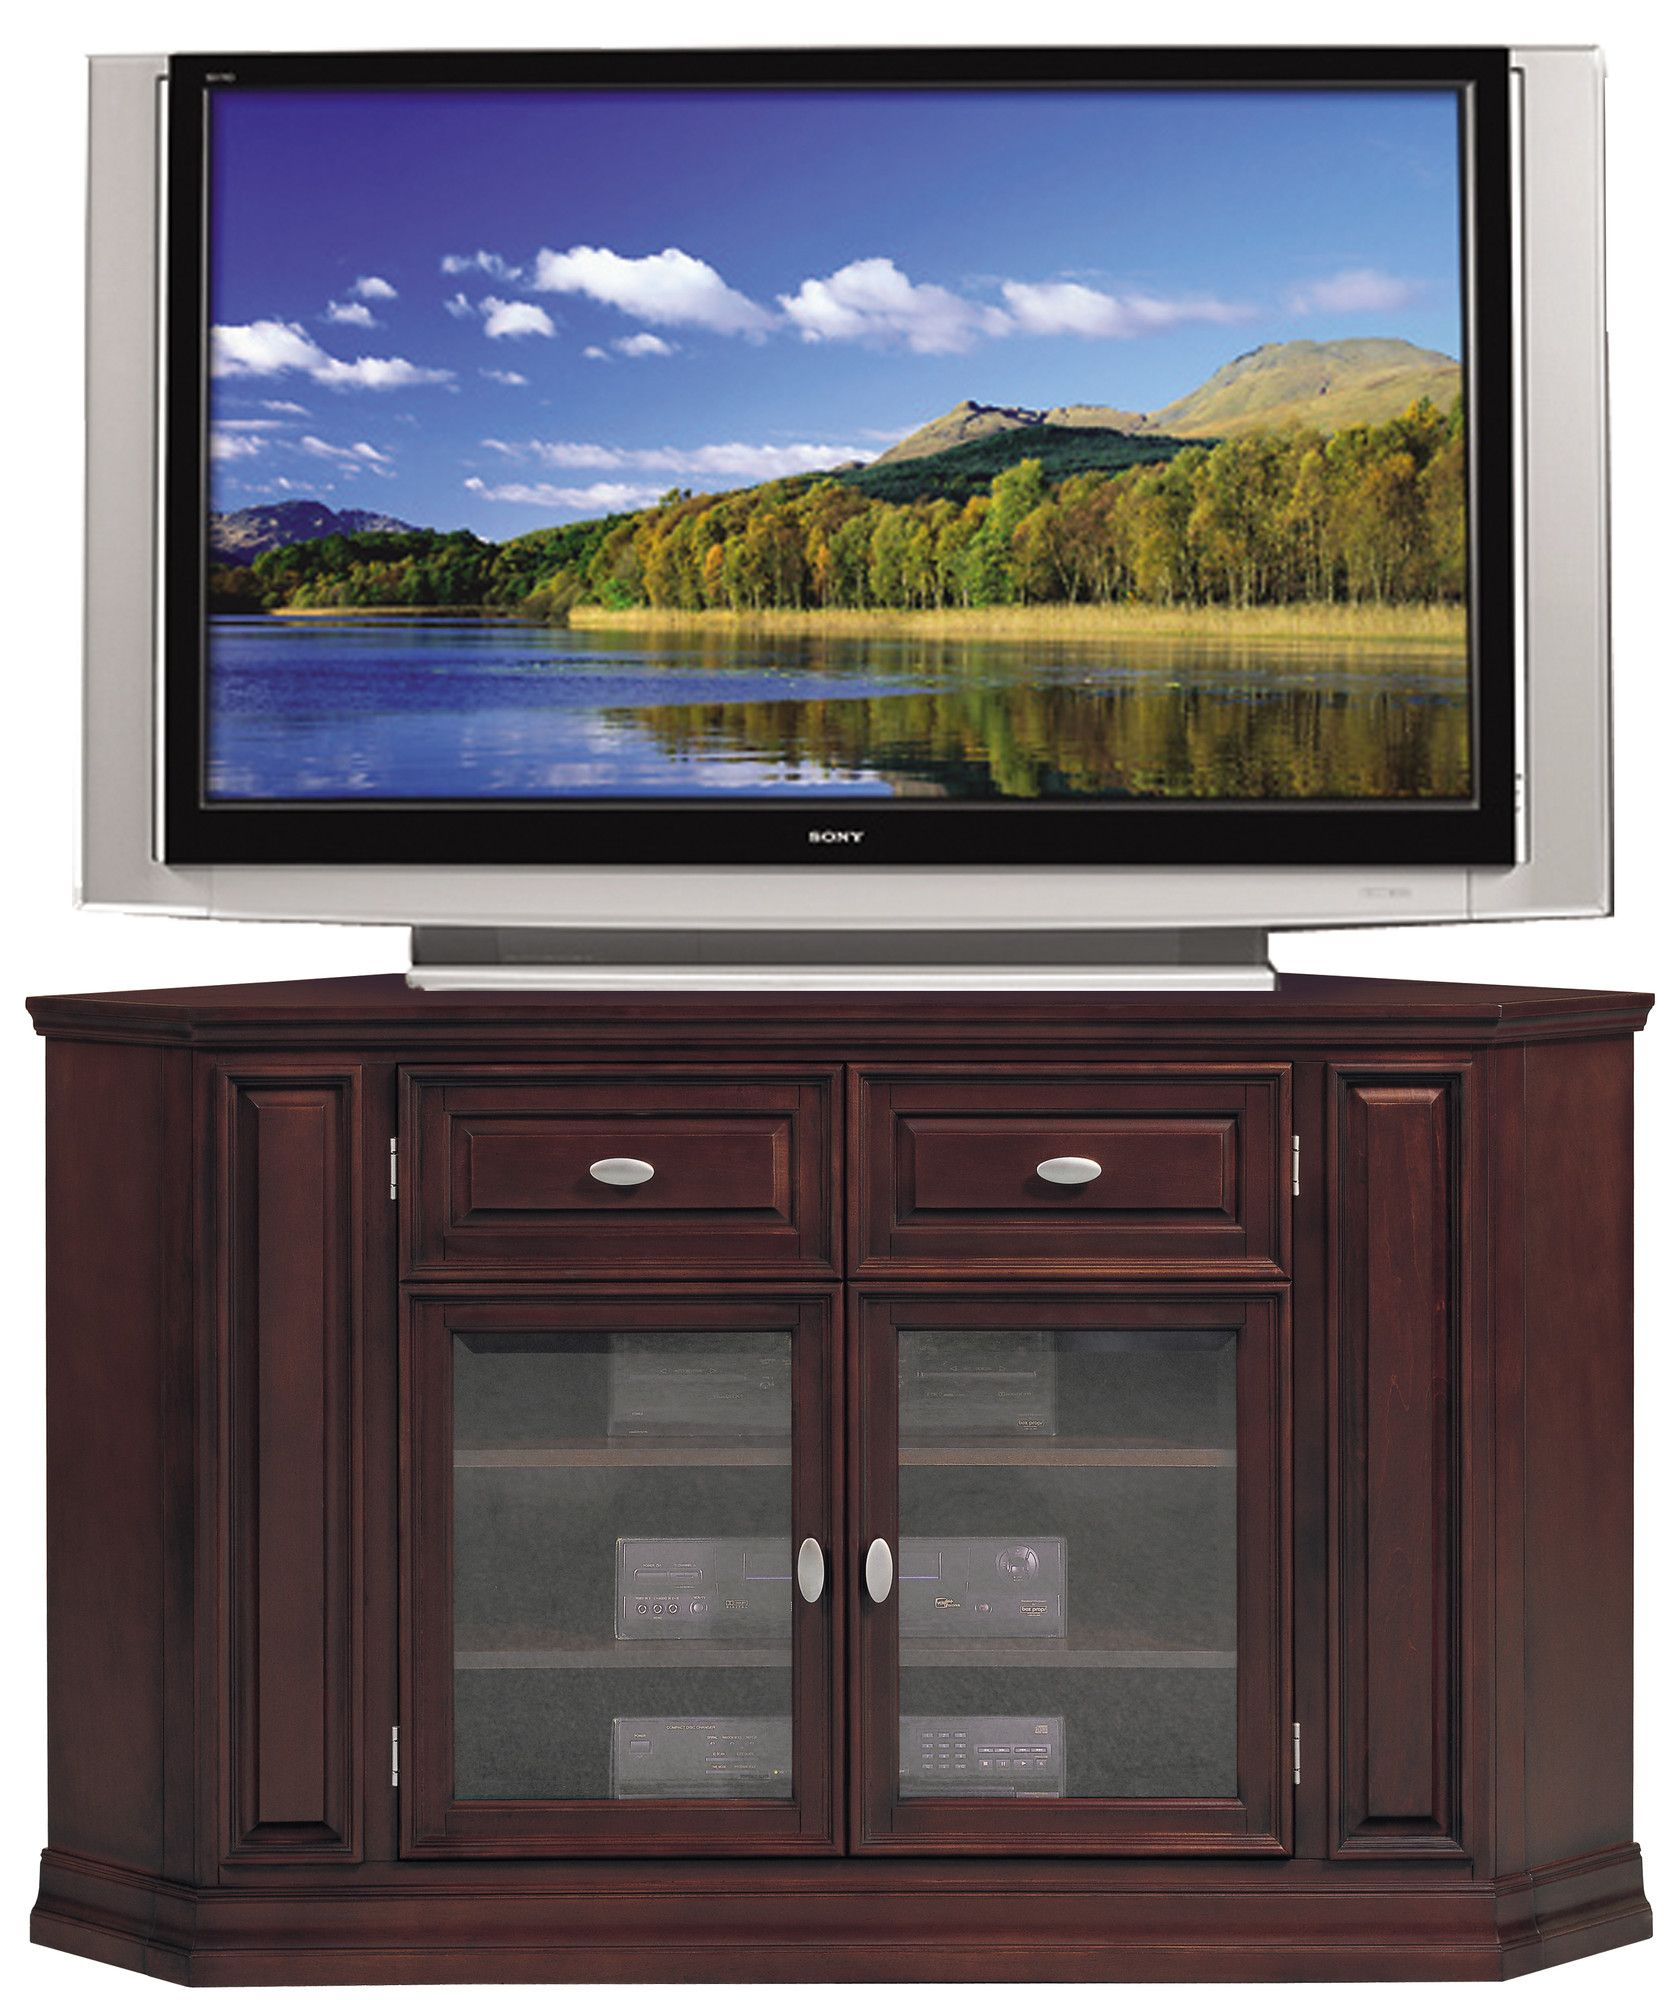 Lorraine Tv Stand For Tvs Up To 60 Tv Stand With Storage Corner Tv Console Tall Corner Tv Stand